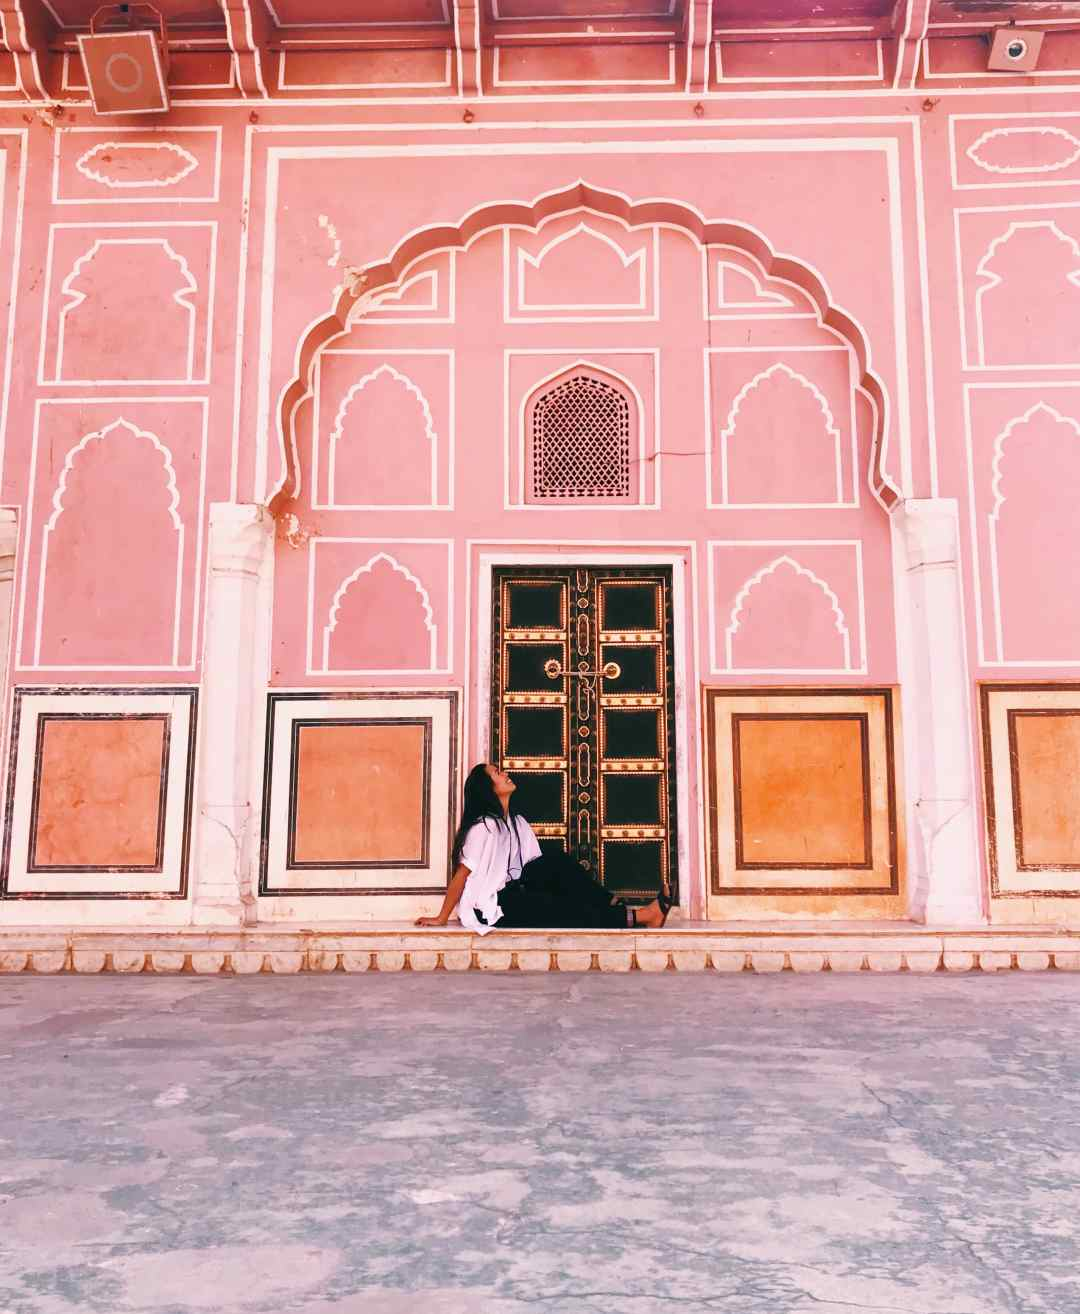 7 Instagrammable Spots In The Pink City Of Jaipur